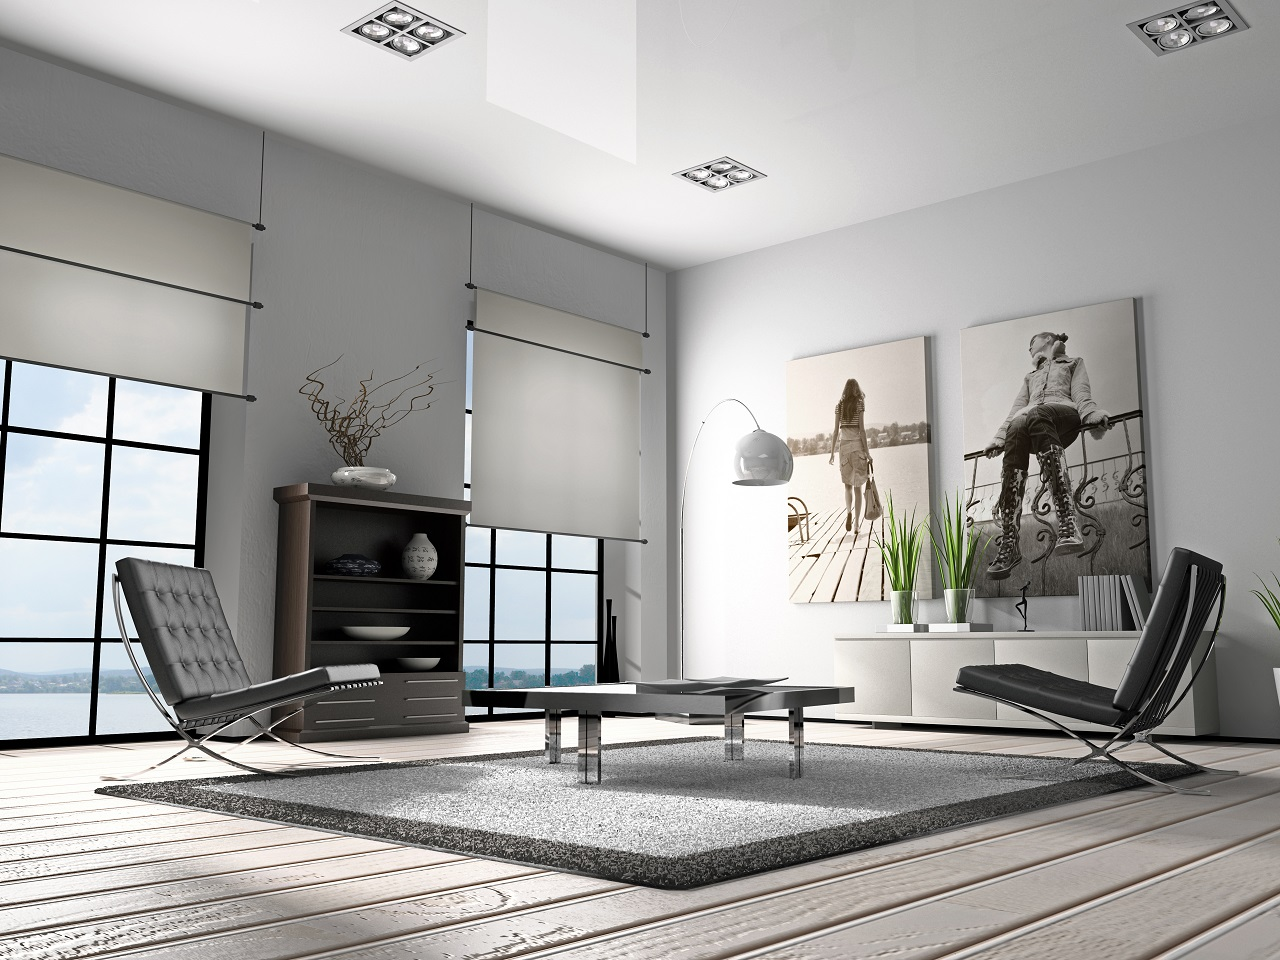 A living room decorated with different shades of grey